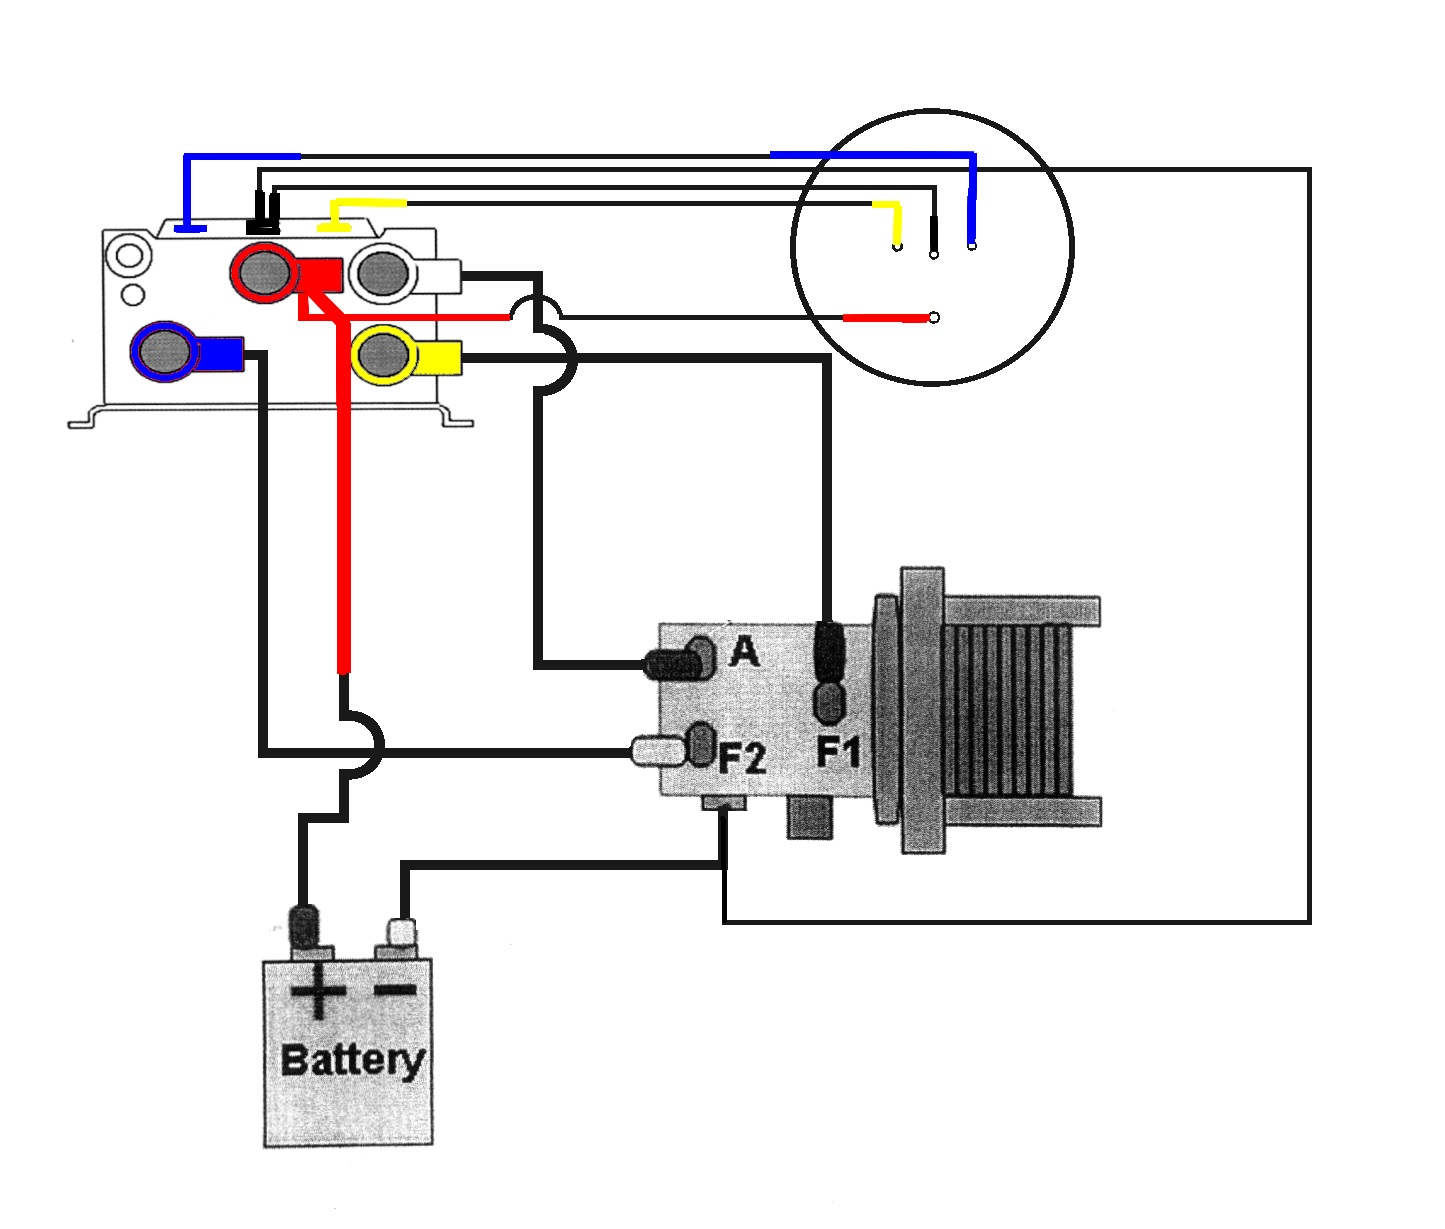 diagram] atv winches wiring diagram full version hd quality wiring diagram  - recreactiongb.mai-lie.fr  recreactiongb.mai-lie.fr